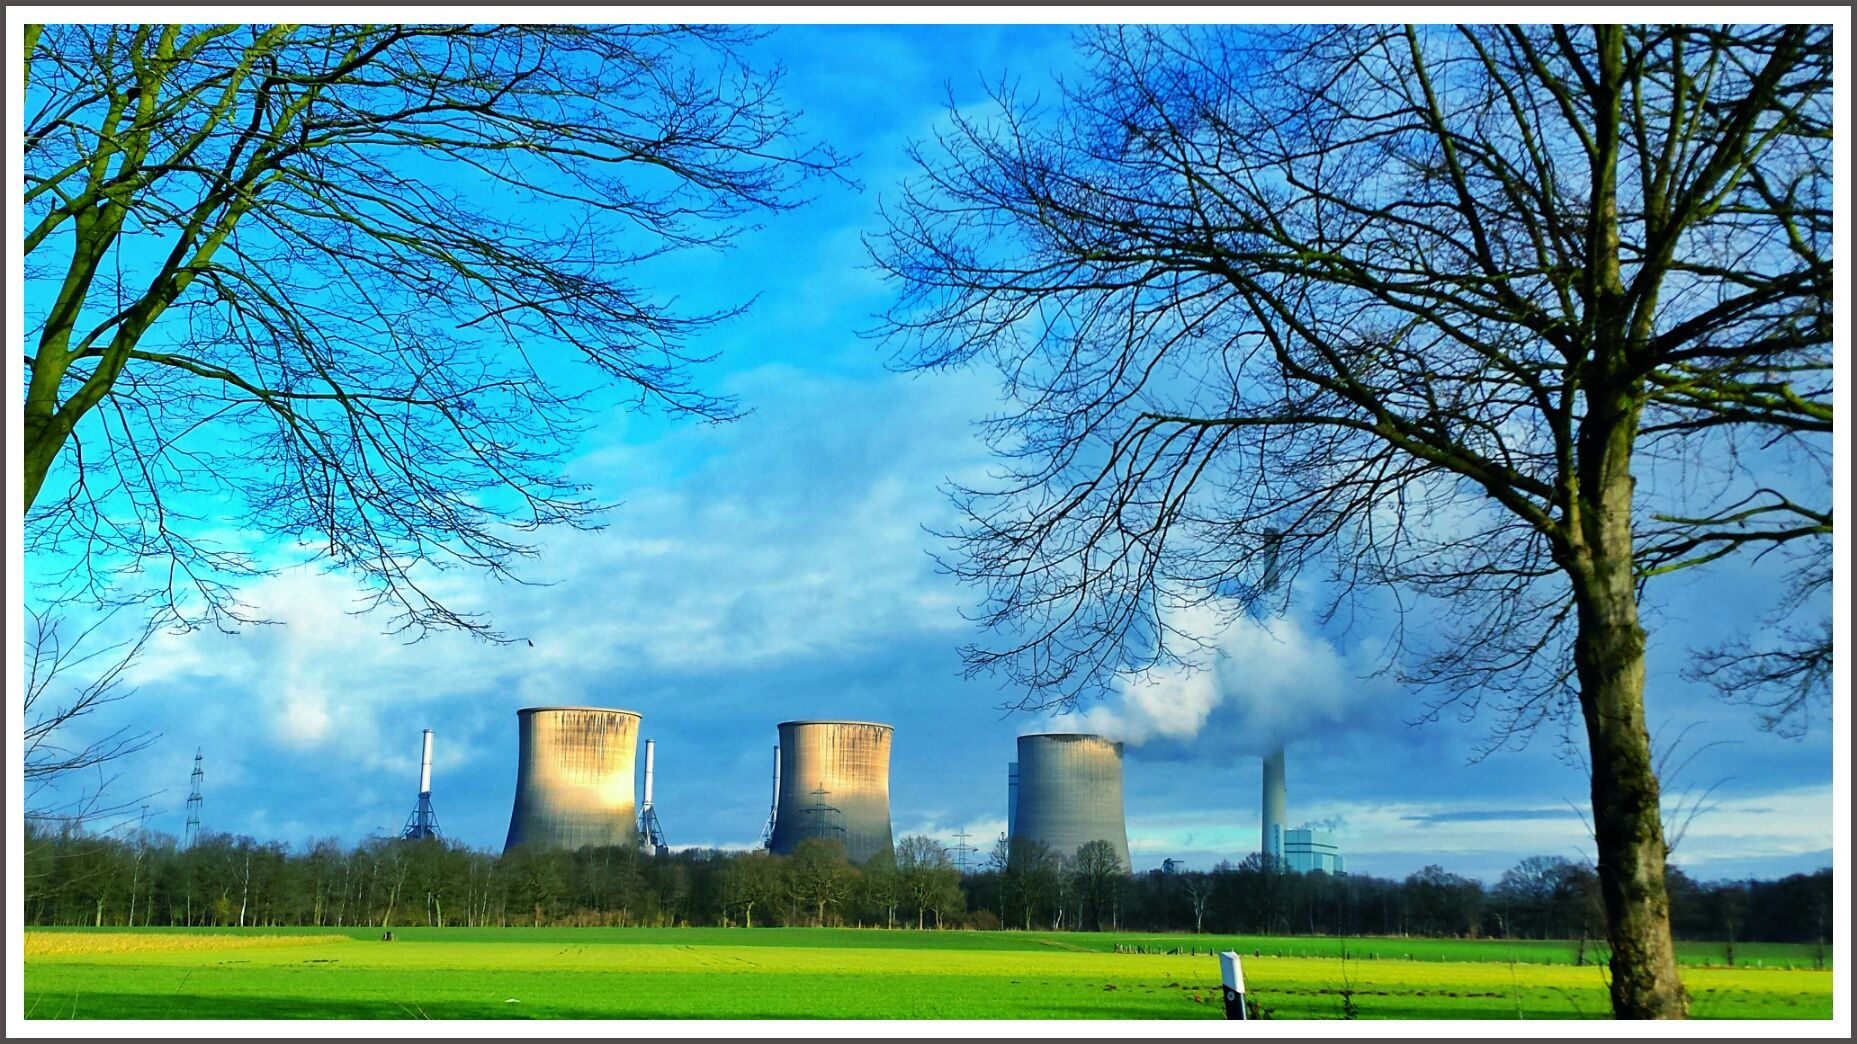 future of nuclear power in sustainable development essay